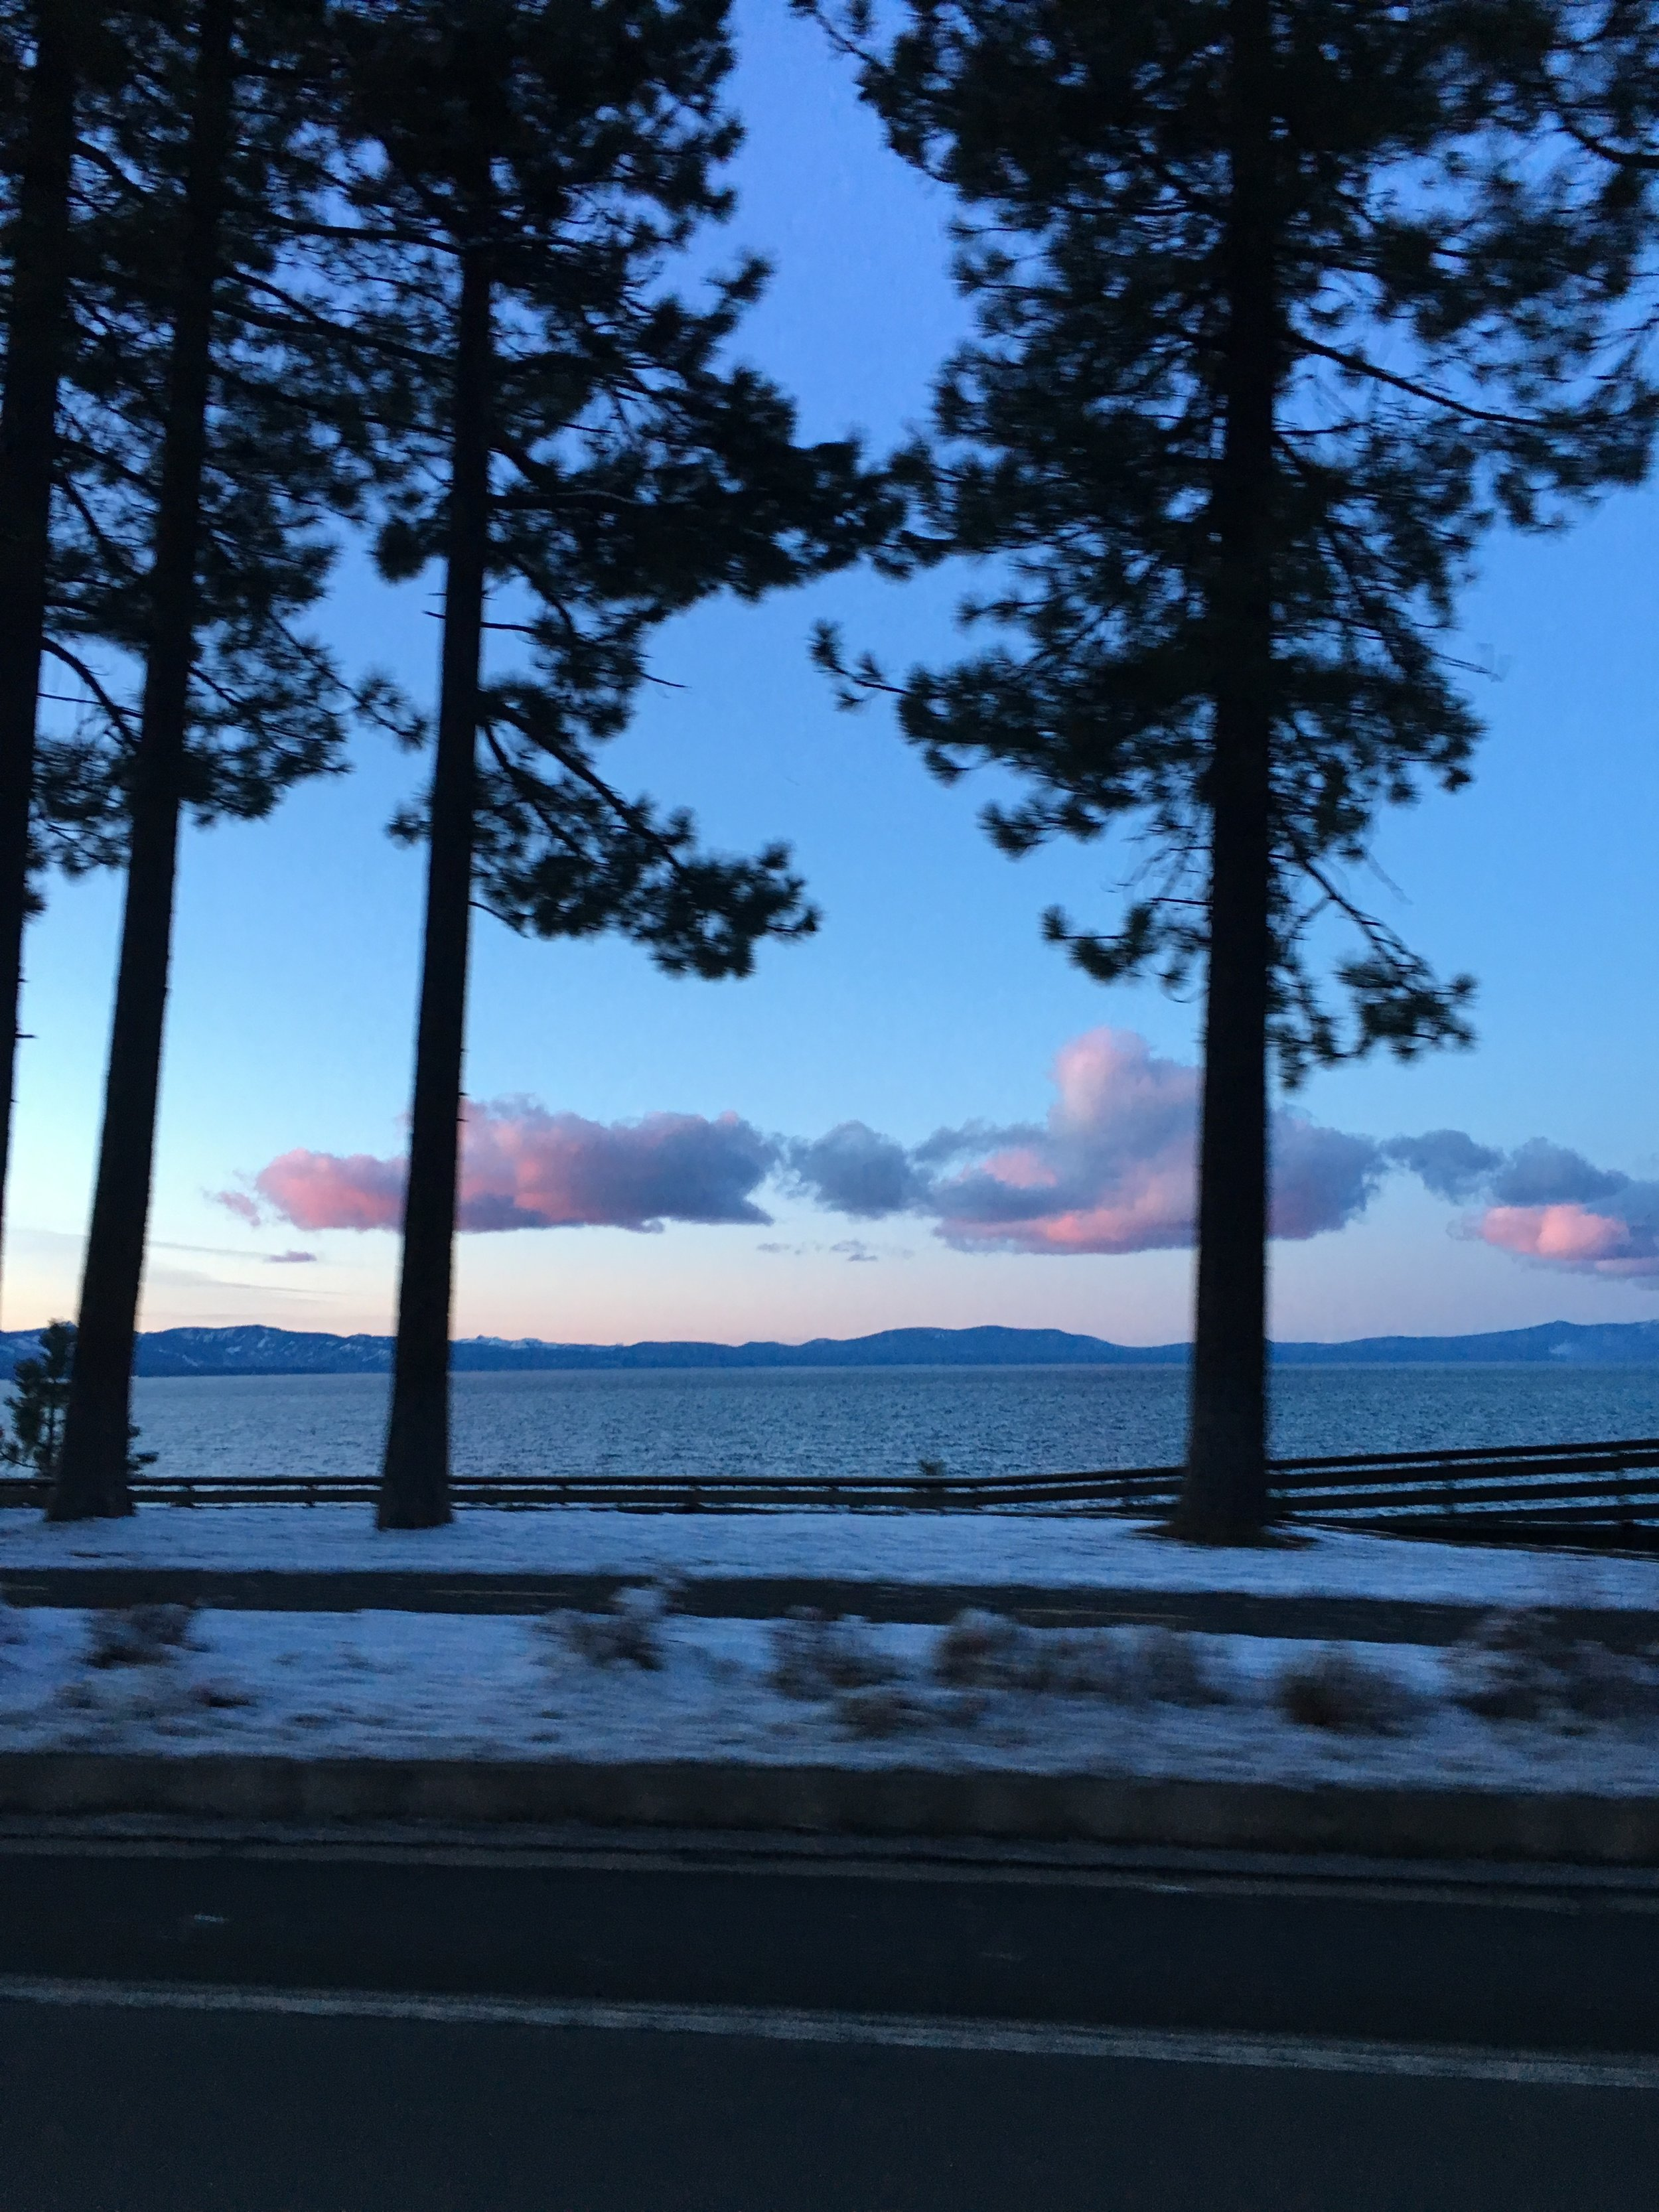 The sunset in South Lake Tahoe, CA | Watson & Walls